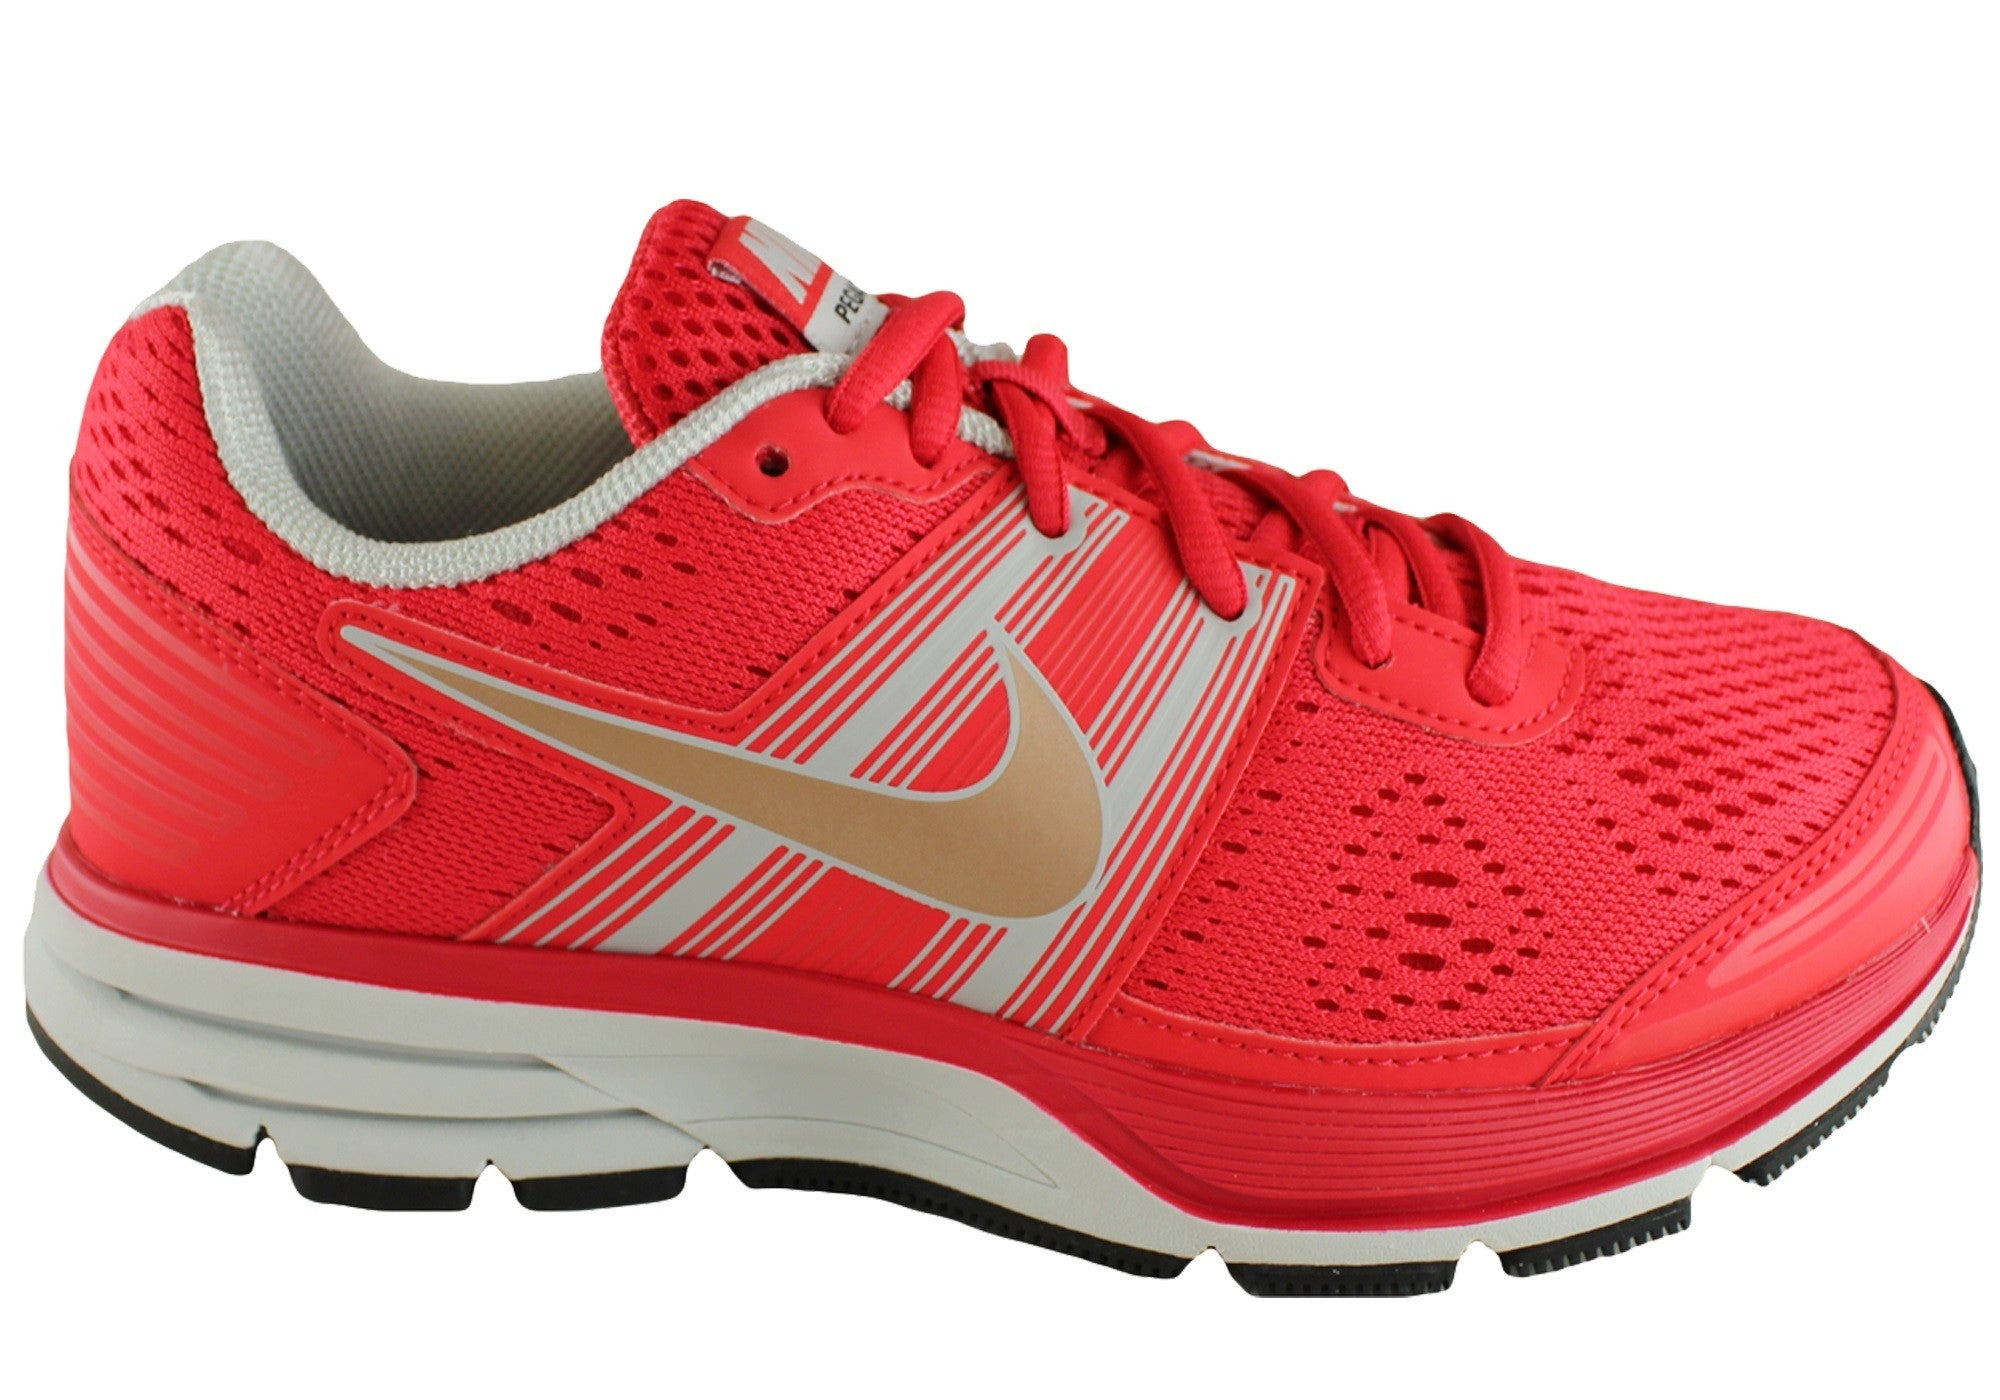 Awesome Ladies New Brands Latest Nike Ladies Shoes Pictures 2013